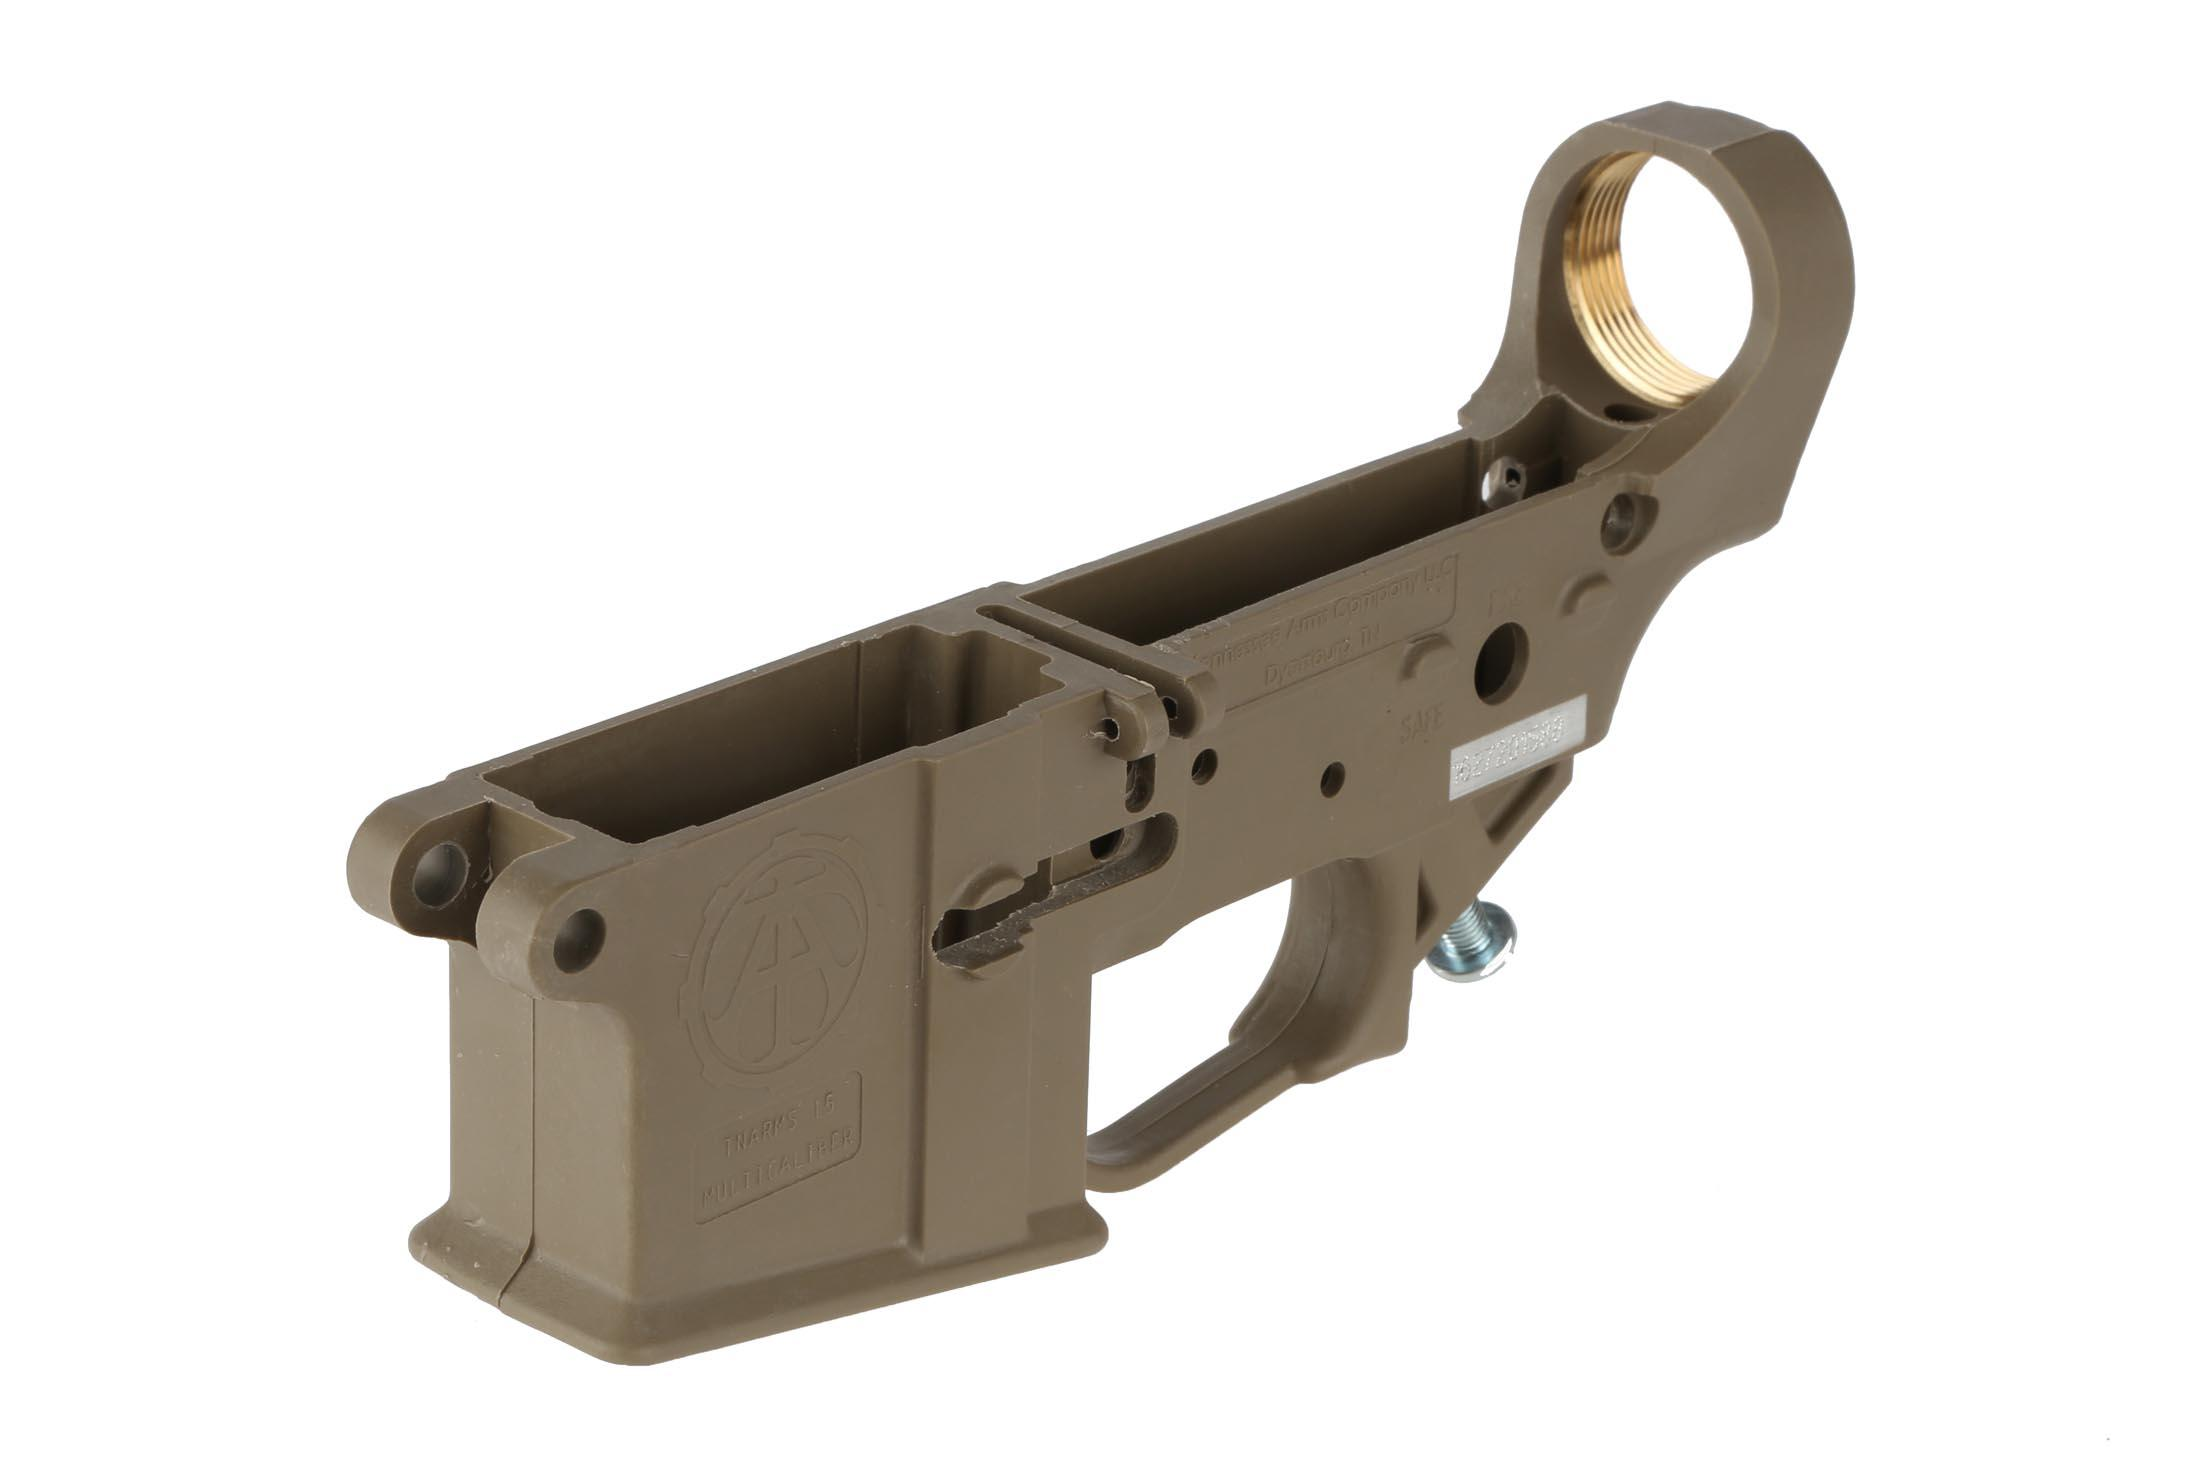 The Tennessee Arms Company Hybrid Polymer Lower Receiver Features Marine Grade Br Inserts For Durability